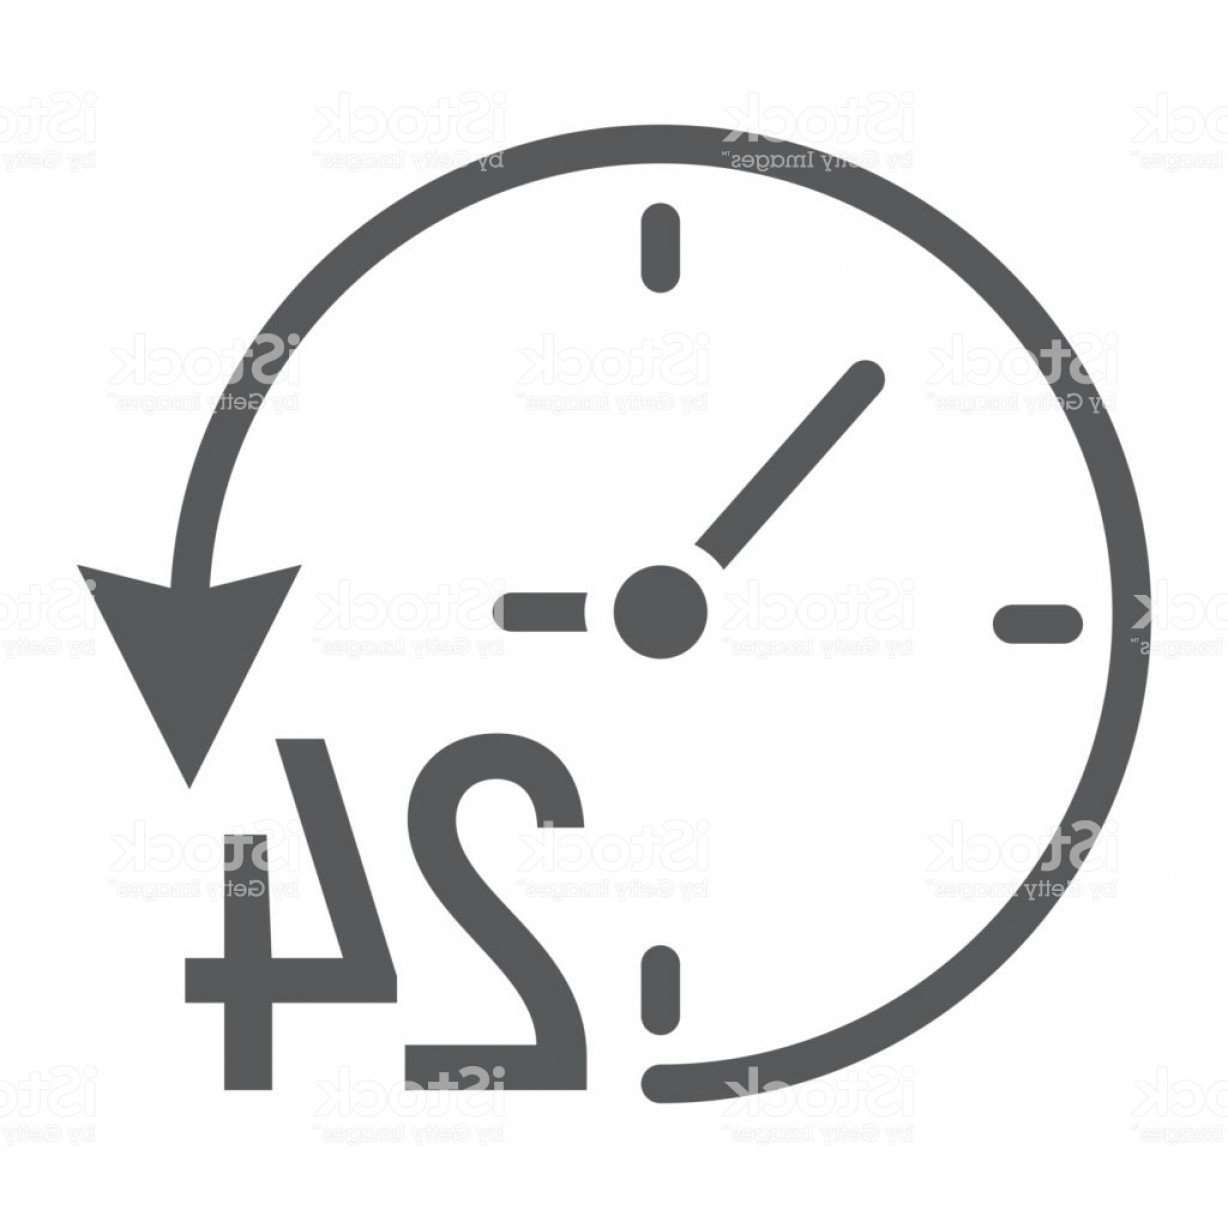 320 Vector: Twenty Four Hour Glyph Icon E Commerce And Marketing Clock Sign Vector Graphics A Gm